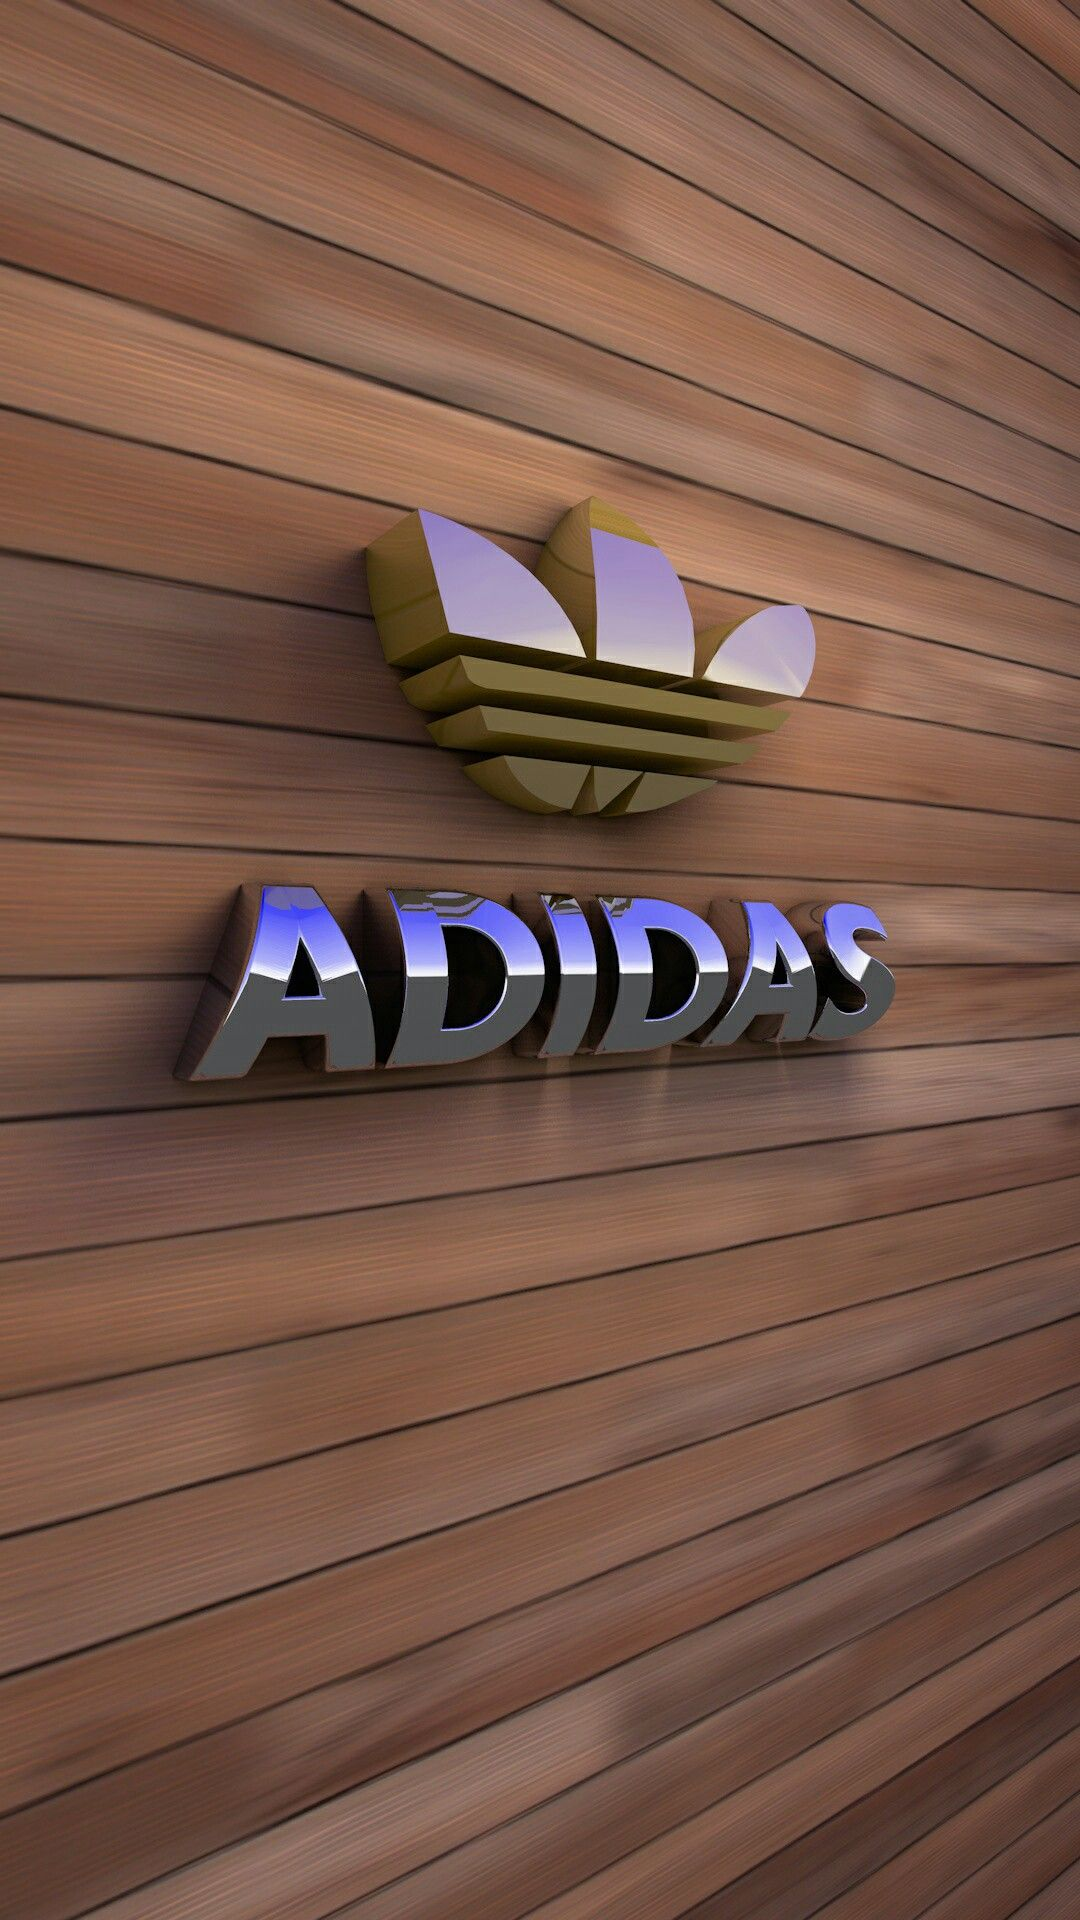 Adidas Wallpaper Brands Other Wallpapers HD